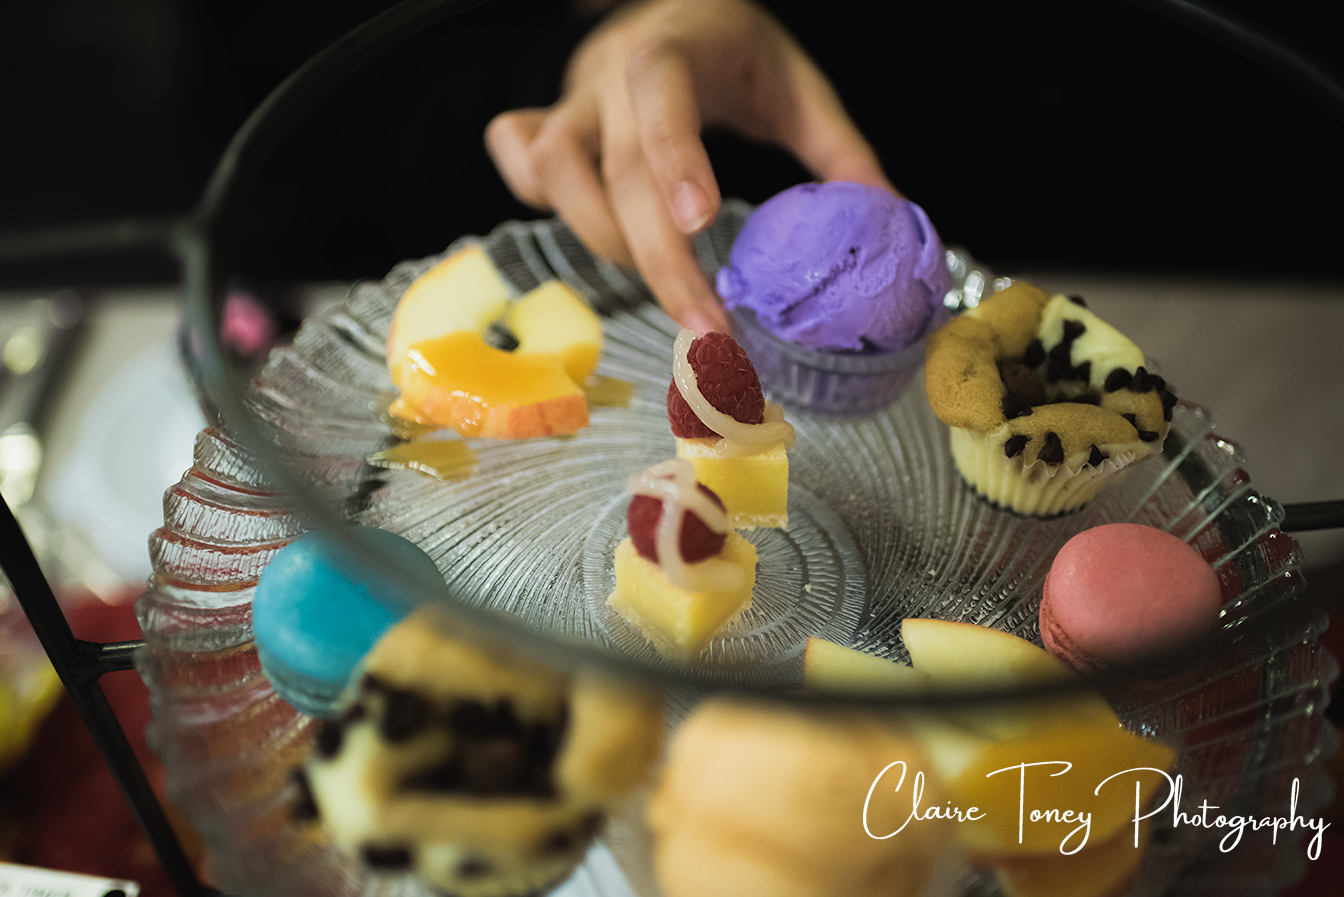 Dessert plate with Taro Ice Cream at Dash of Panache Teahouse Roseville CA Documentary Photography Claire Toney